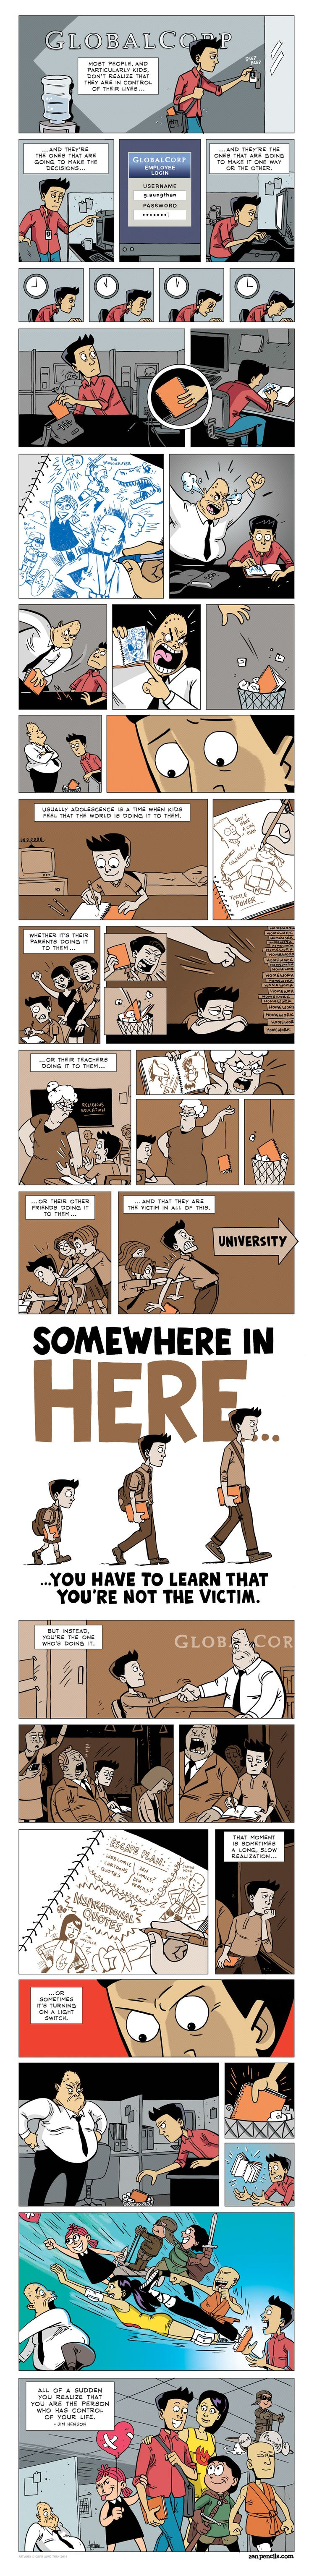 A Simple Truth In This Comic Will Change The Way You Look At Your Career & Life. I needed this